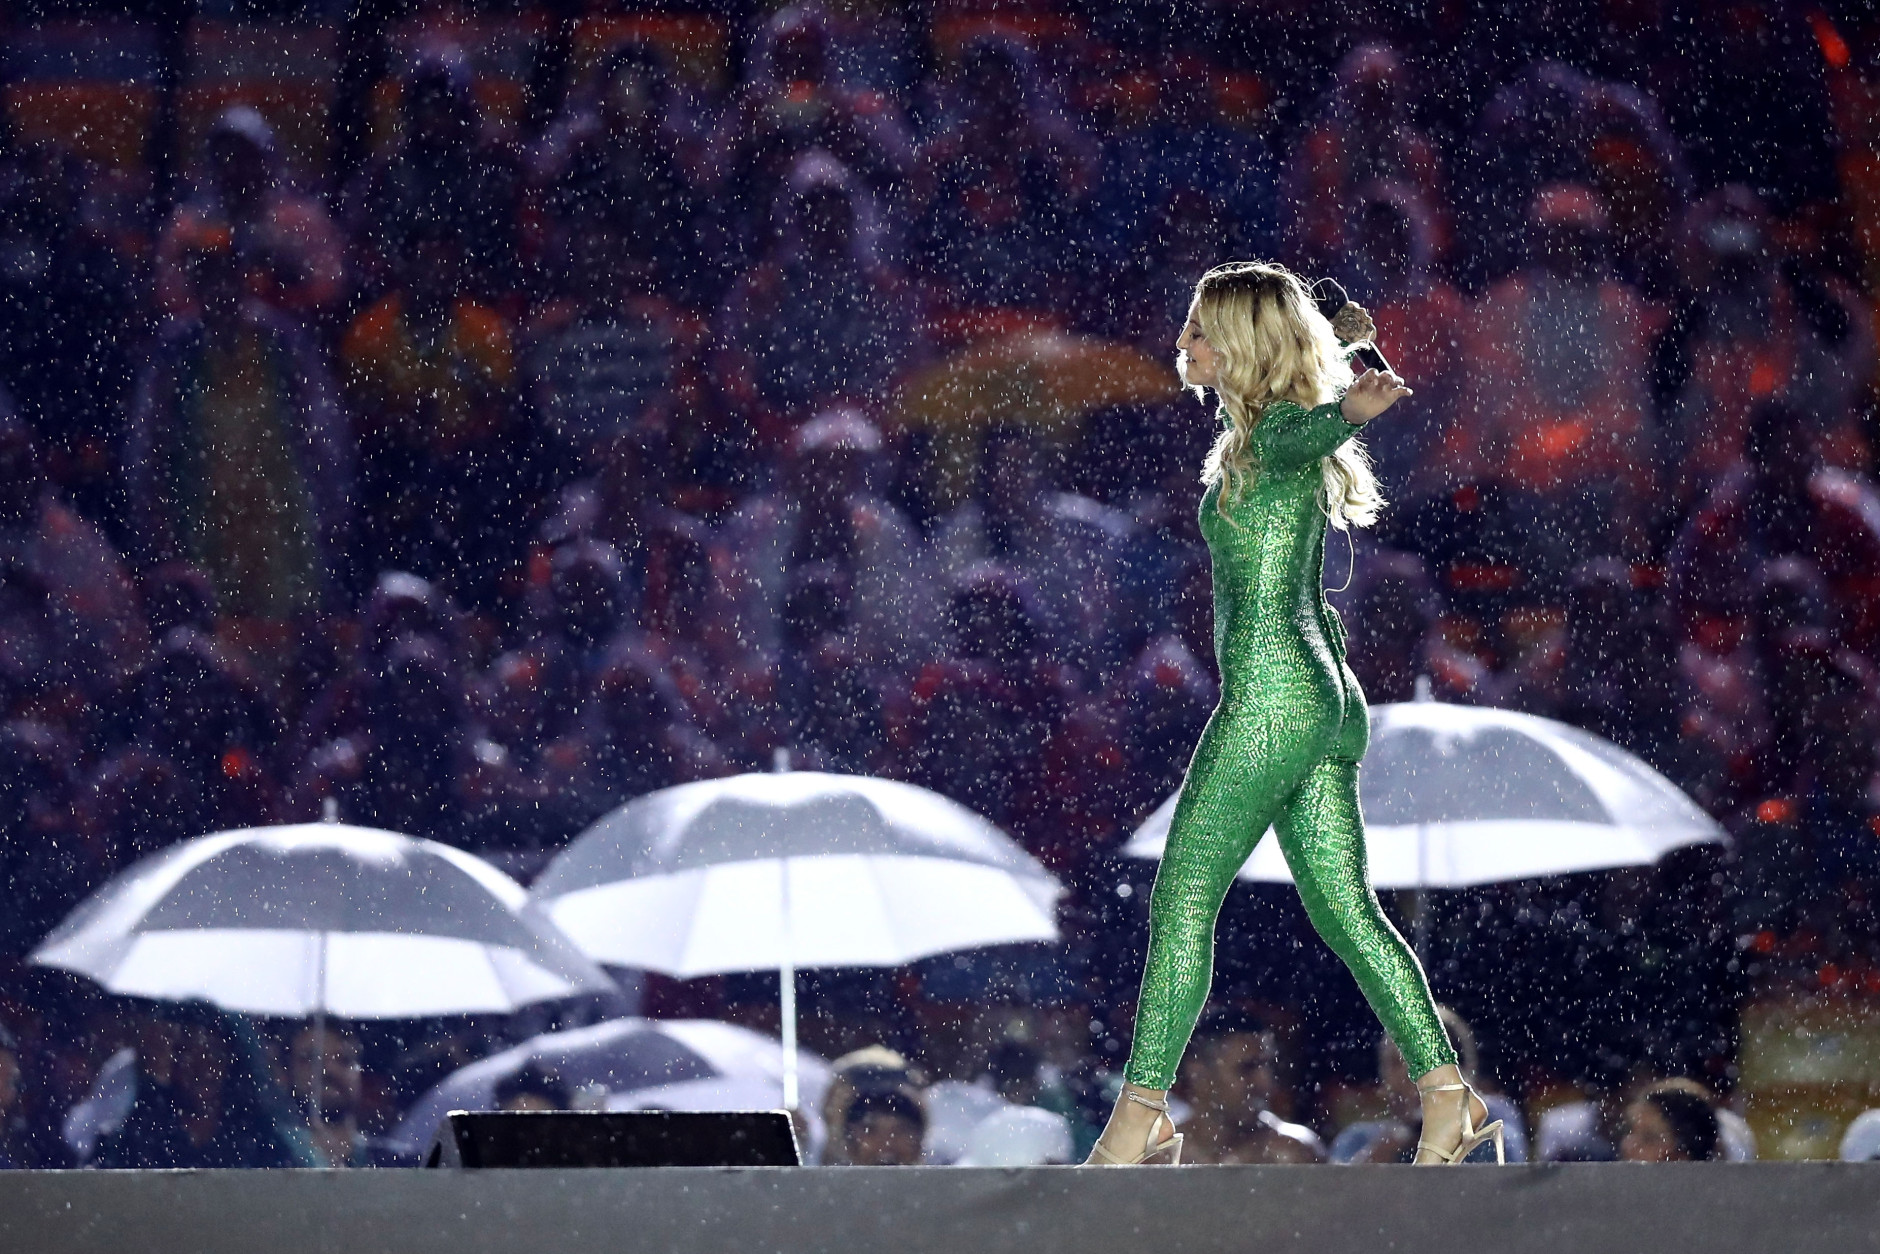 """RIO DE JANEIRO, BRAZIL - AUGUST 21: Singer-songwriter Julia Michaels perform the song """"Carry Me"""" during the Closing Ceremony on Day 16 of the Rio 2016 Olympic Games at Maracana Stadium on August 21, 2016 in Rio de Janeiro, Brazil.  (Photo by Ezra Shaw/Getty Images)"""